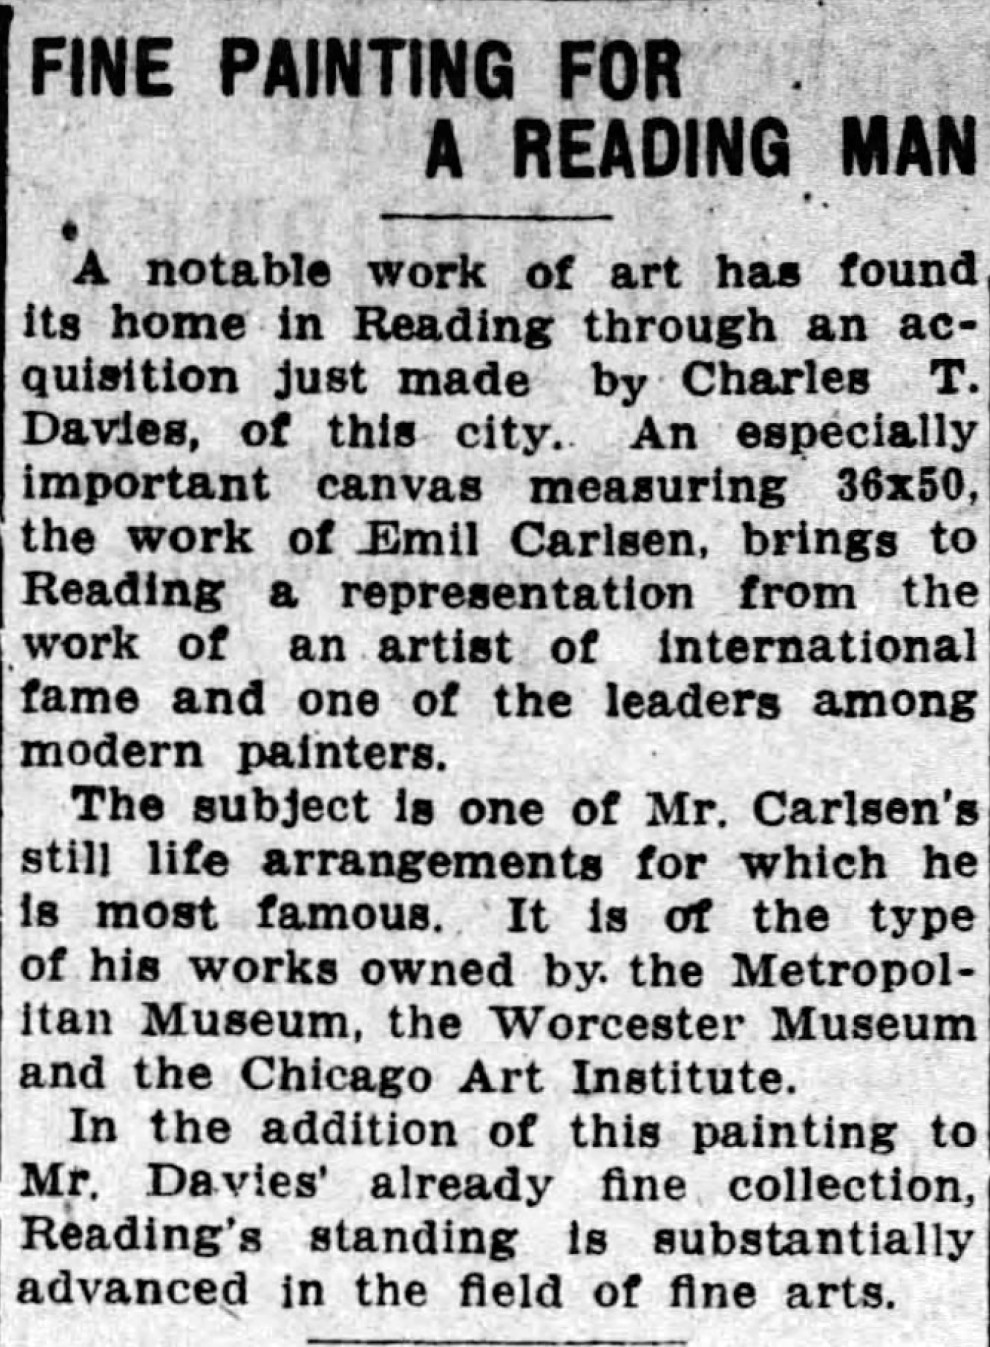 """Reading Times, Reading, PA, """"Fine painting for a reading man"""", Friday, September 24, 1920, page 10, not illustrated"""